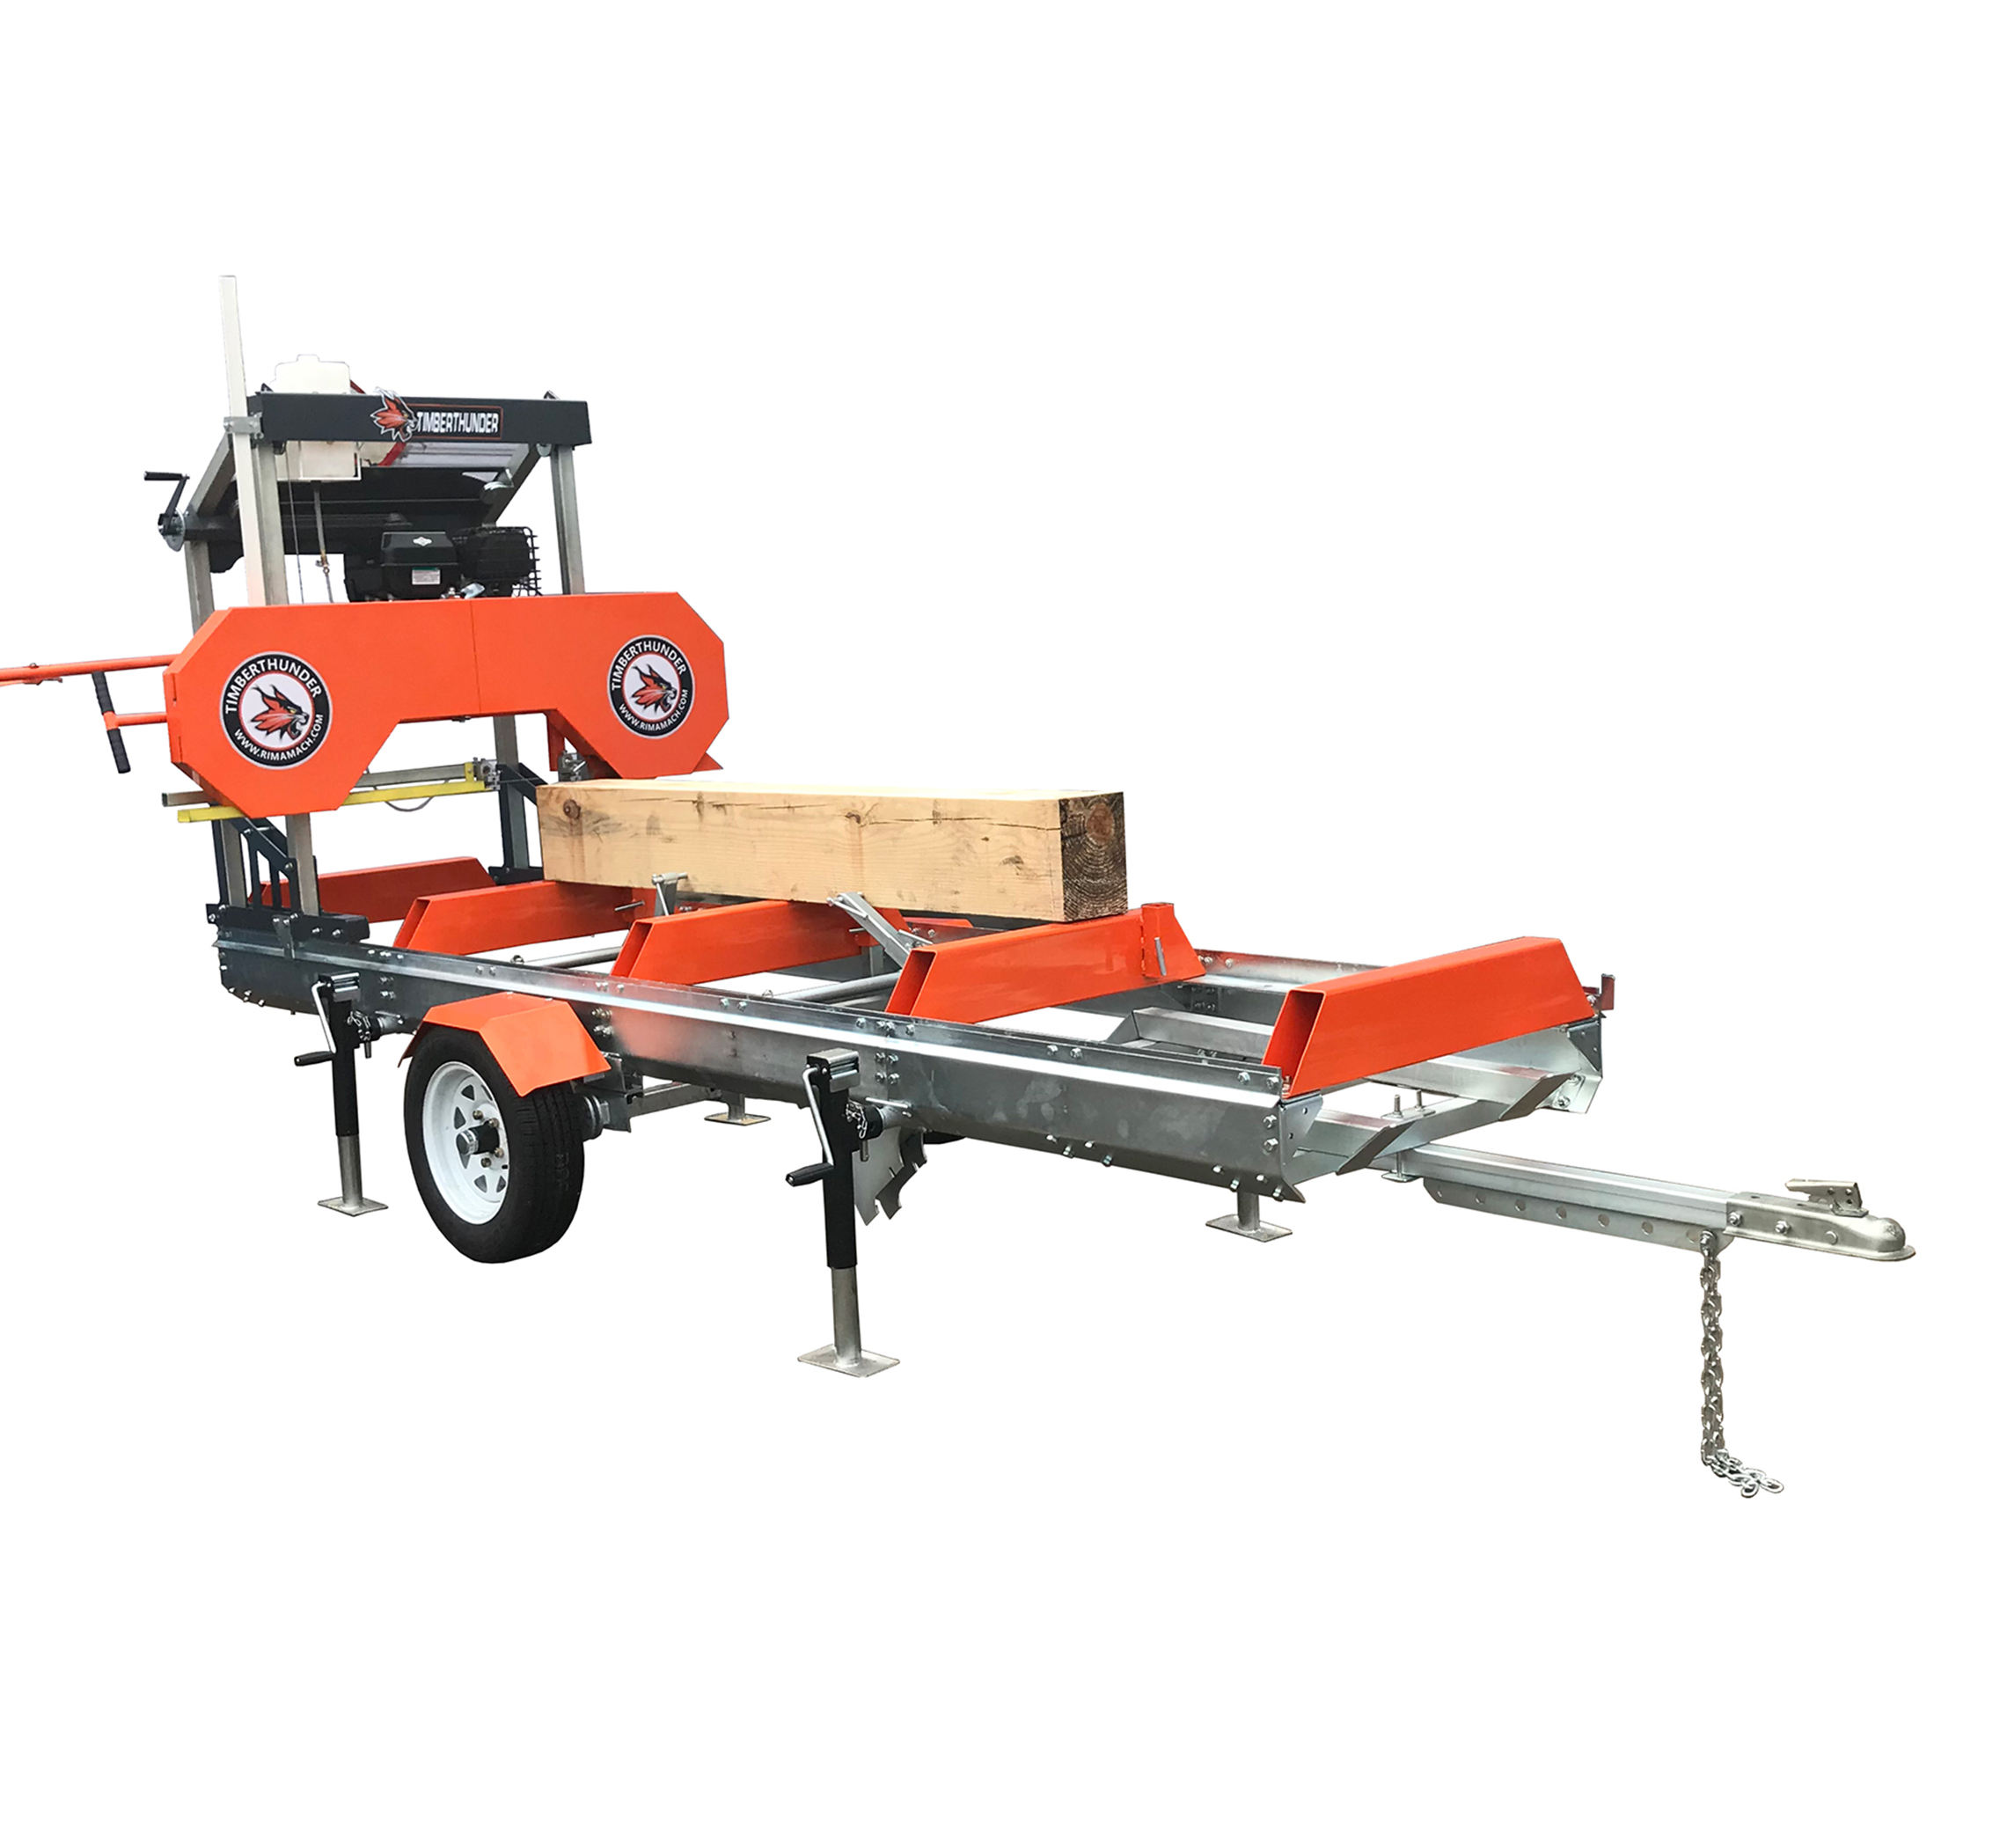 Horizontal Band Saw Mobile Sawmill MJ1000E for Cutting Wood to Planks By Electric Control